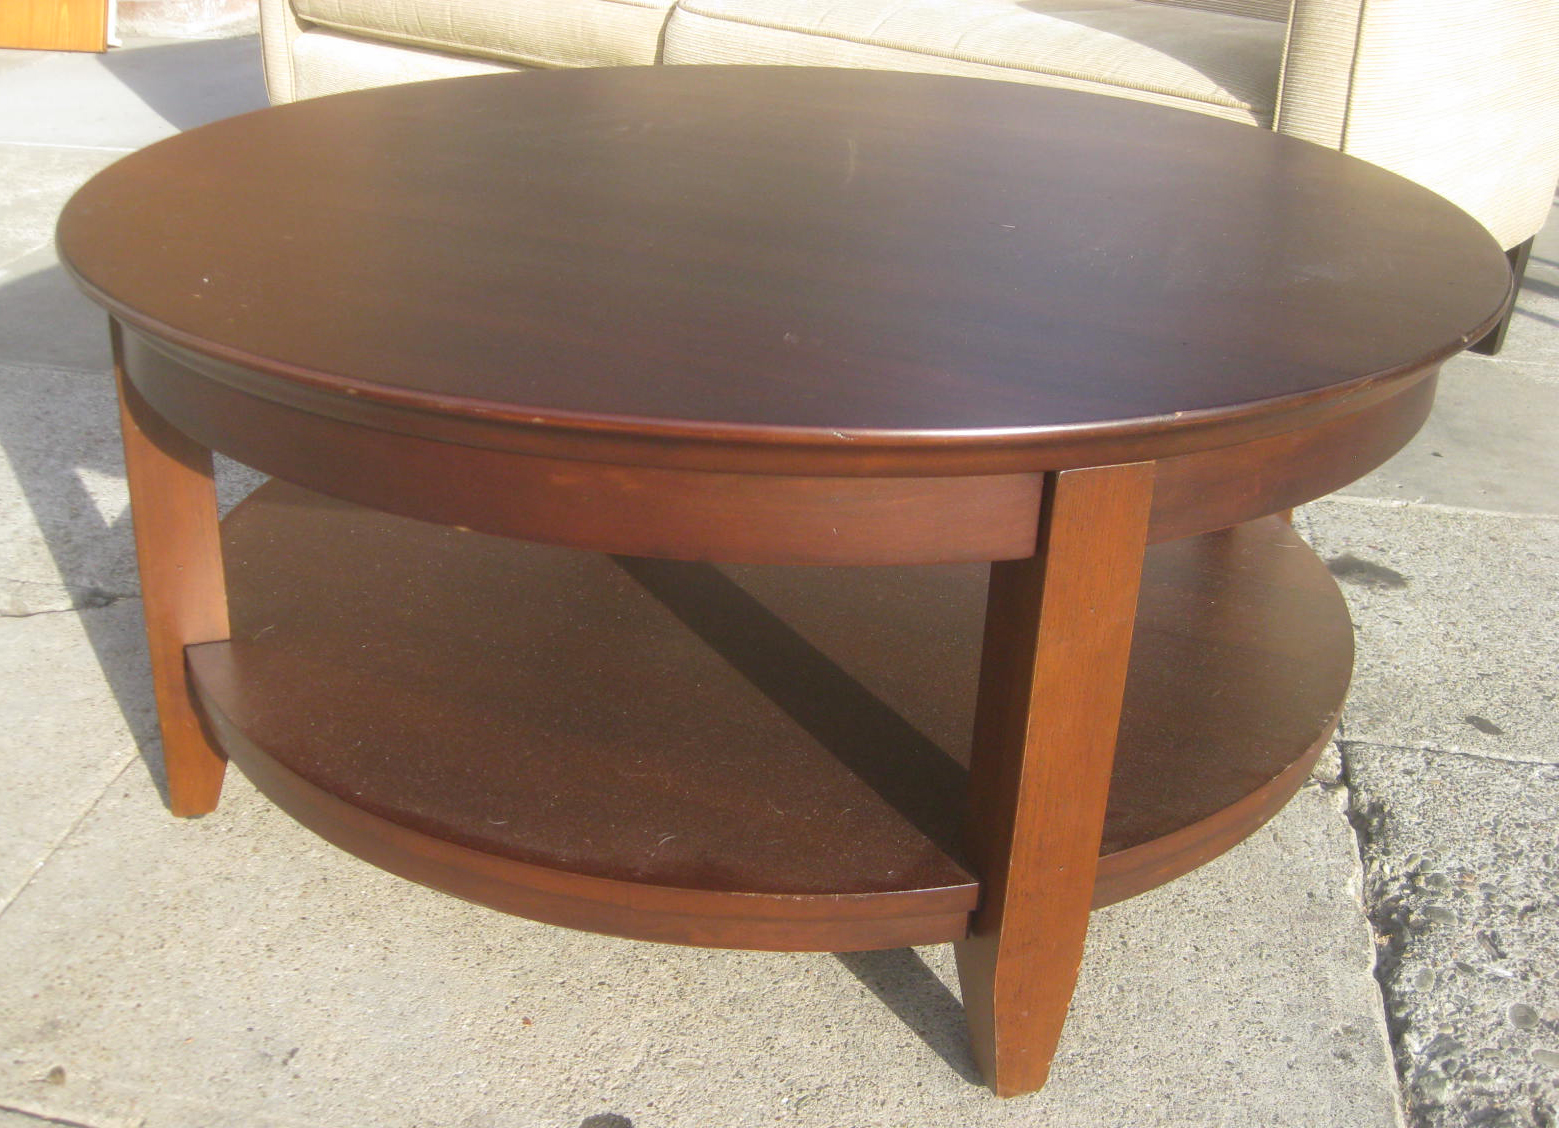 Uhuru furniture collectibles sold round coffee table What to put on a round coffee table